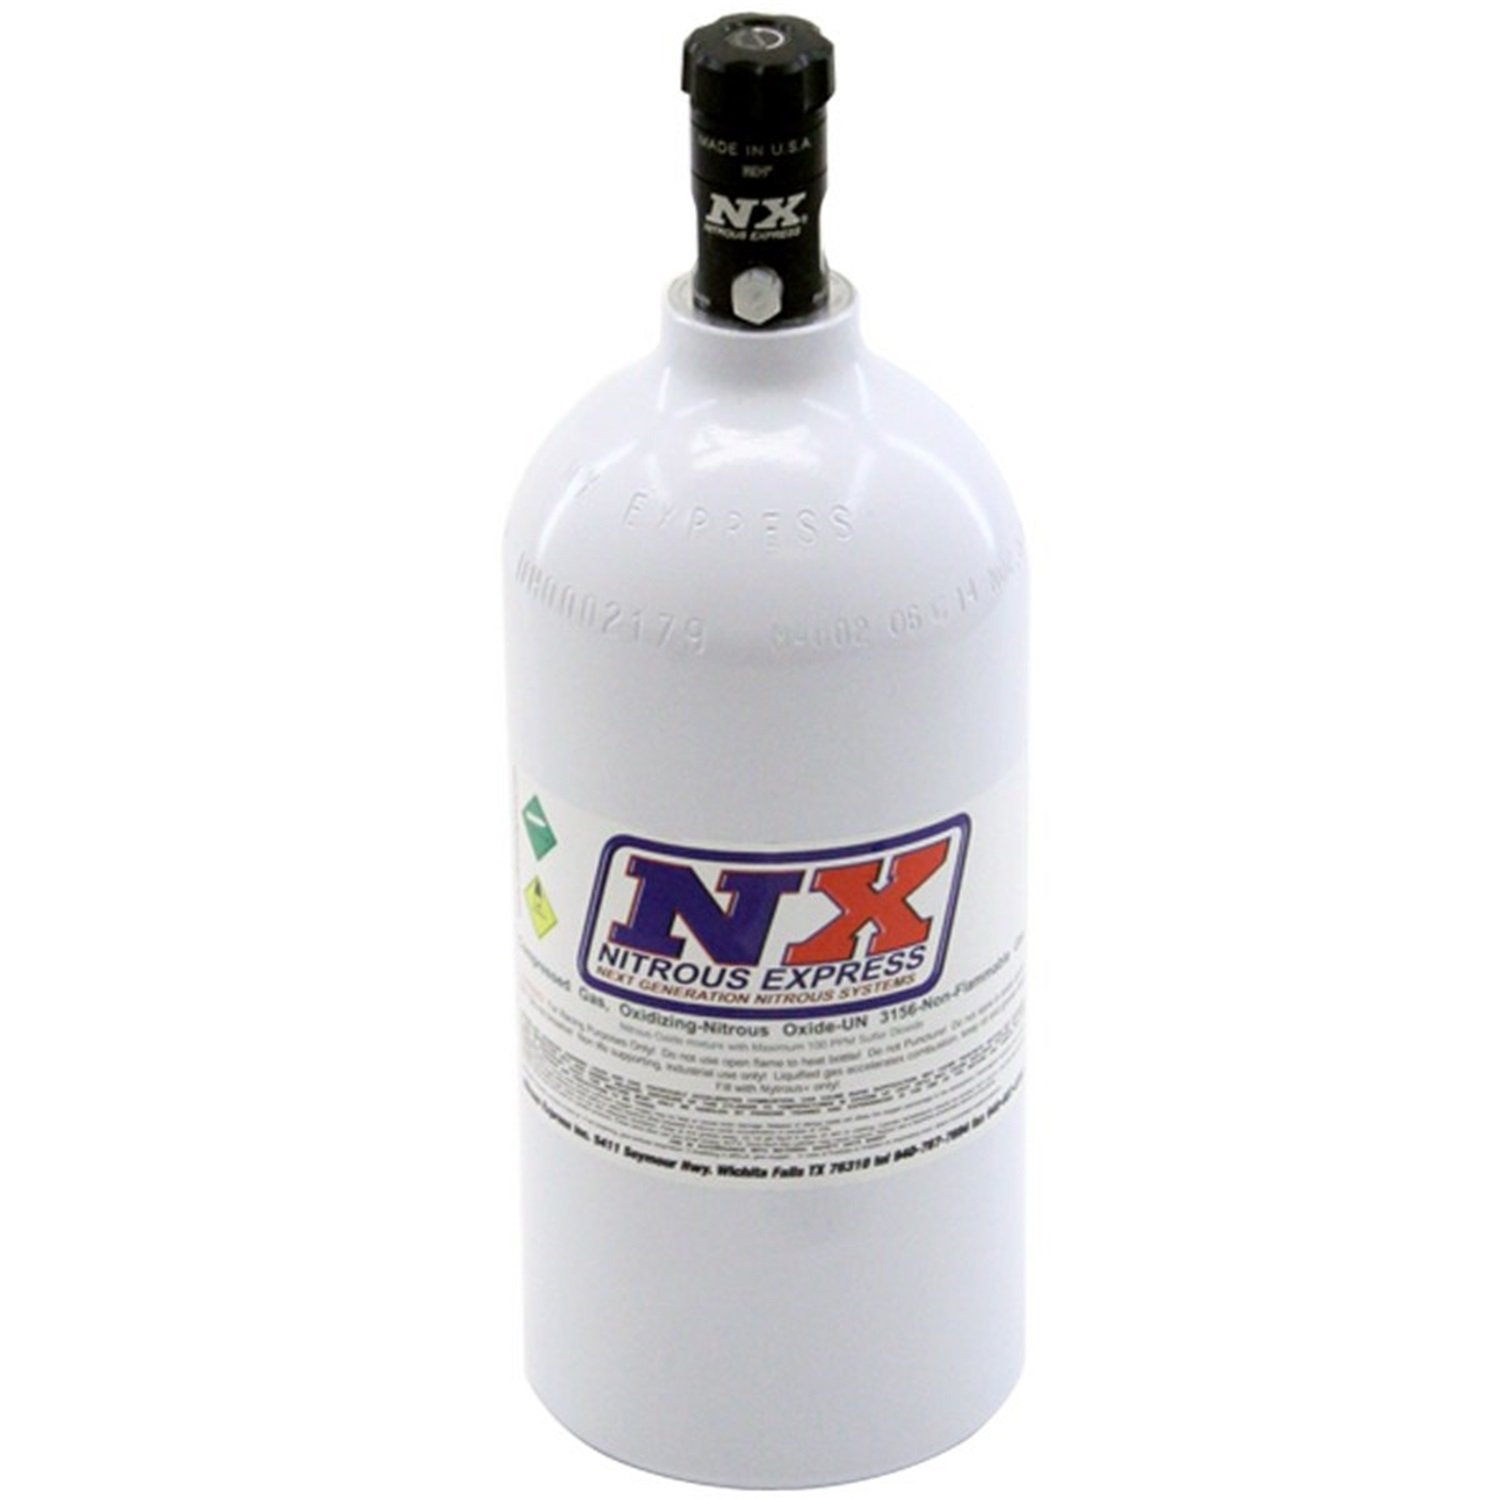 Nitrous Express 11025 Nitrous Bottle with Motorcycle Valve - 2.5 lbs. by Nitrous Express